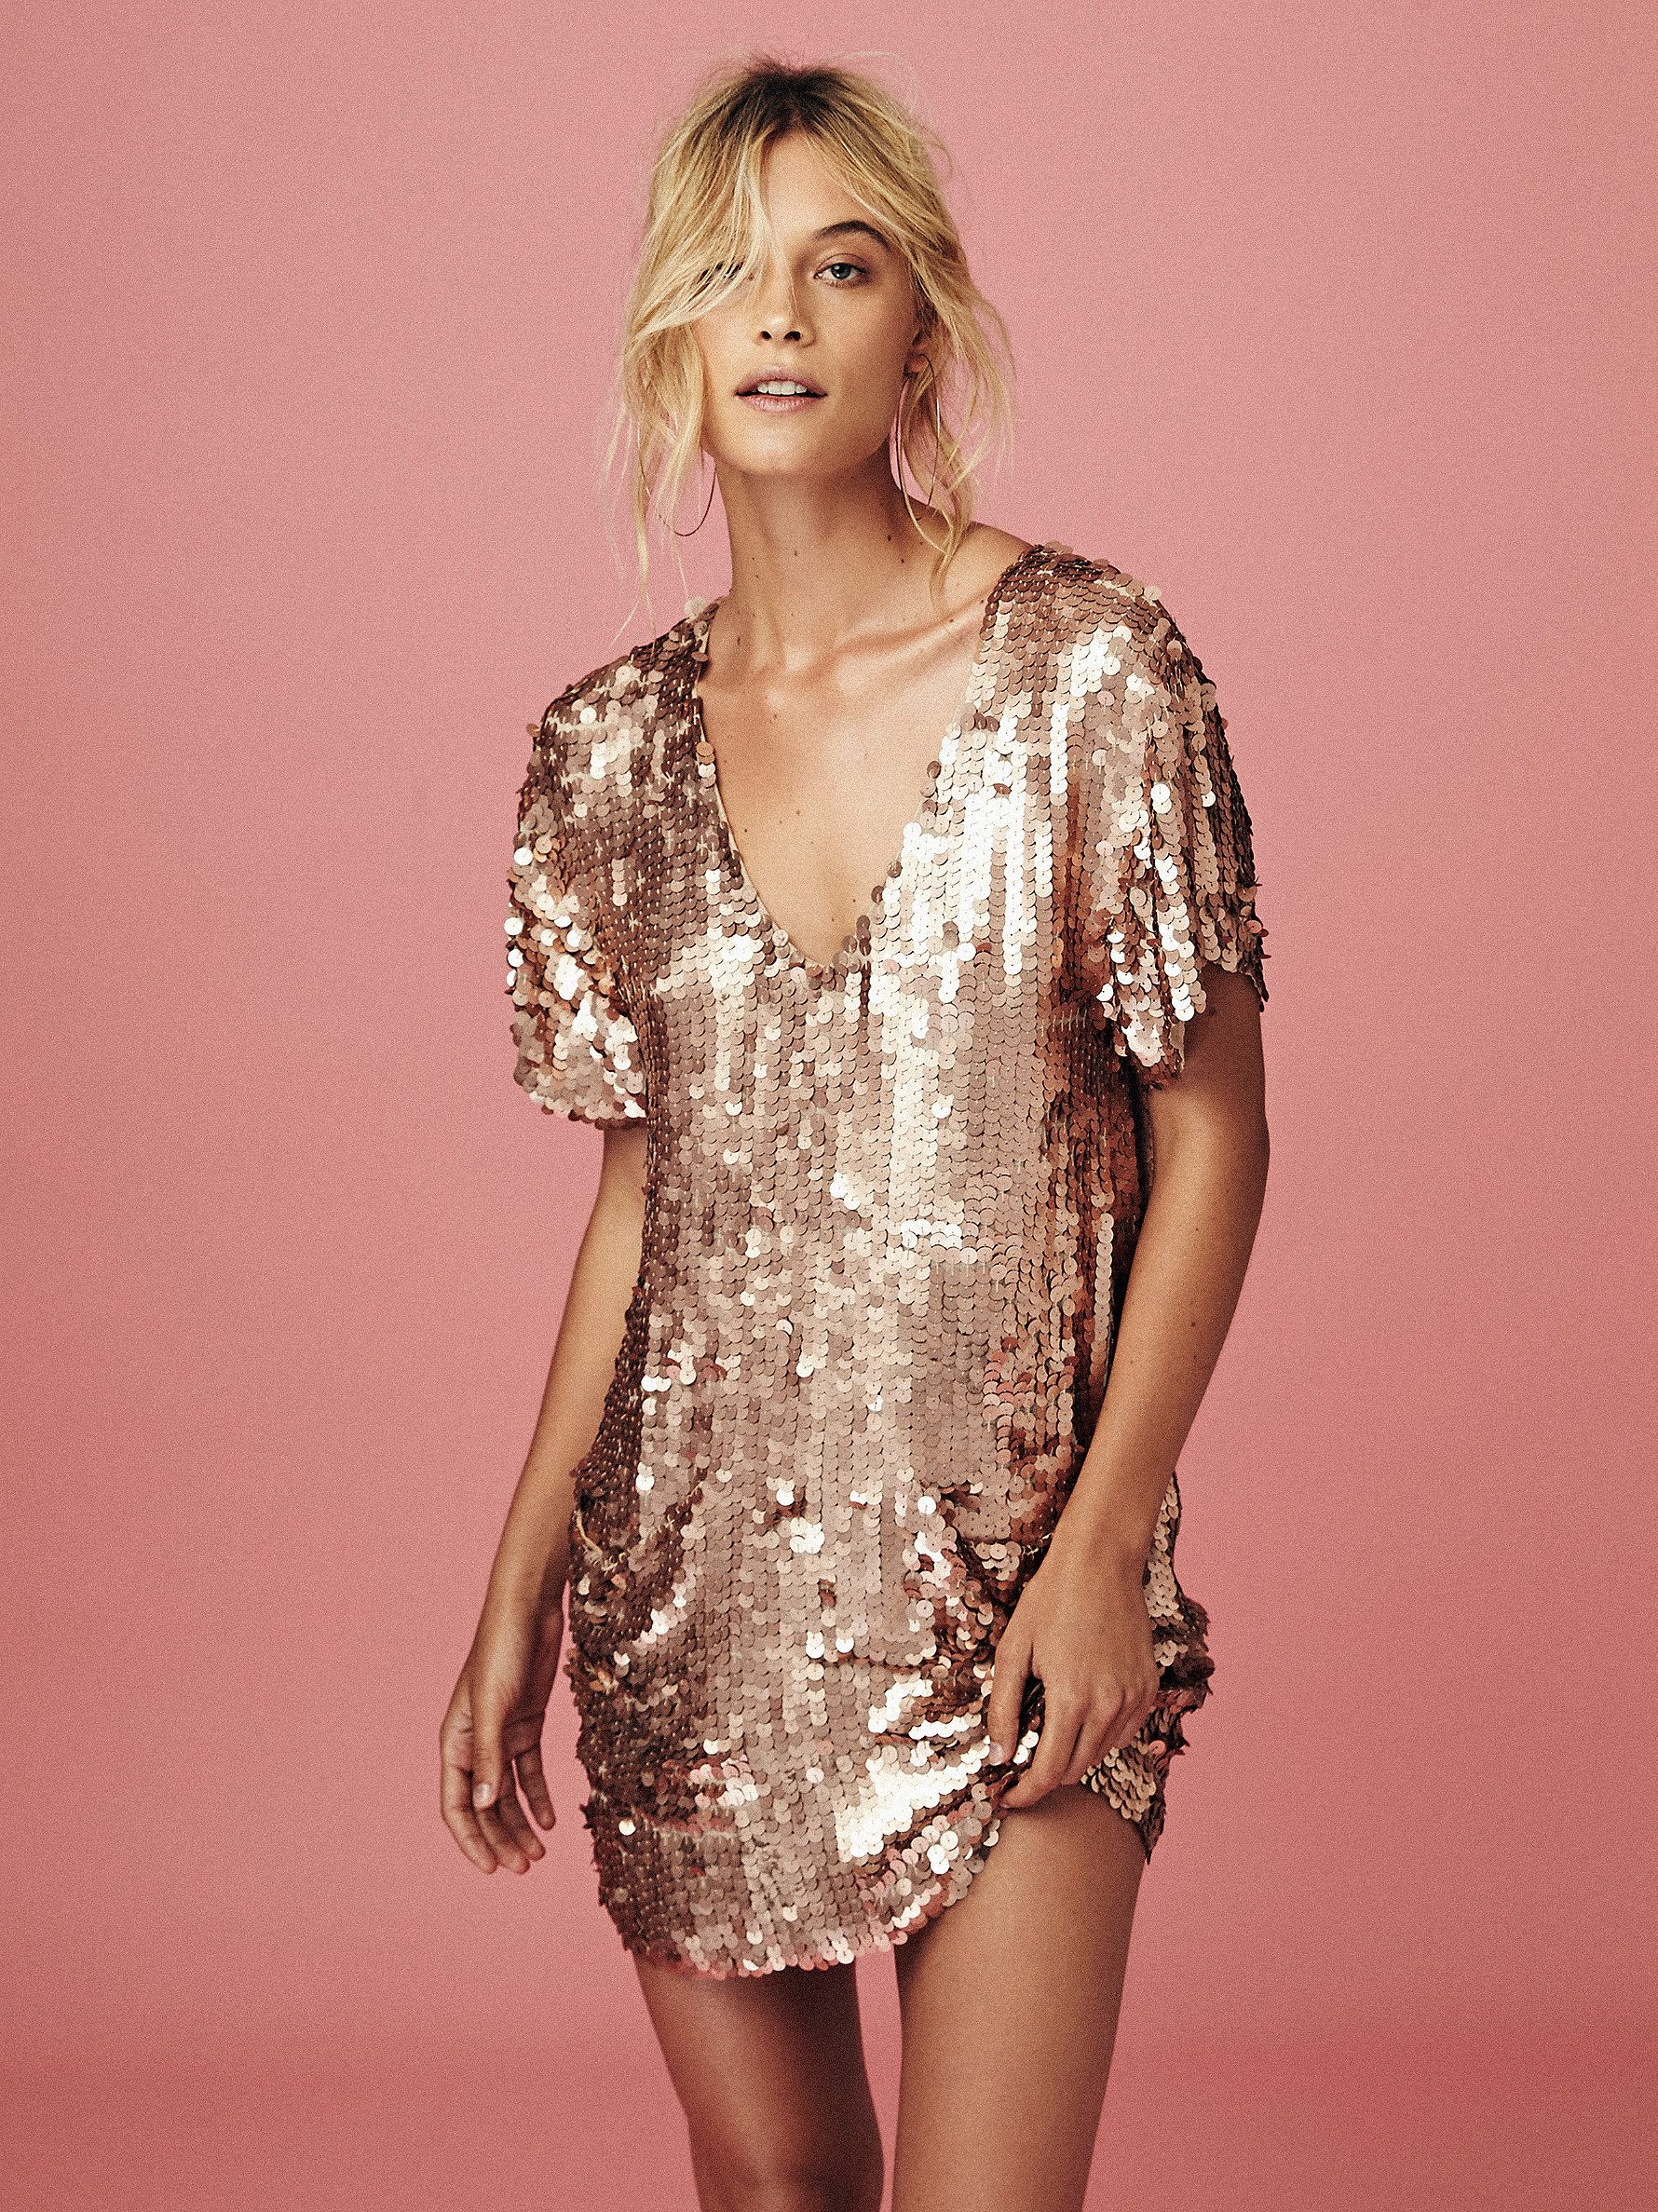 Surry Sequin Dress | Vestiditos, Lentejuelas y Vestido de lentejuelas